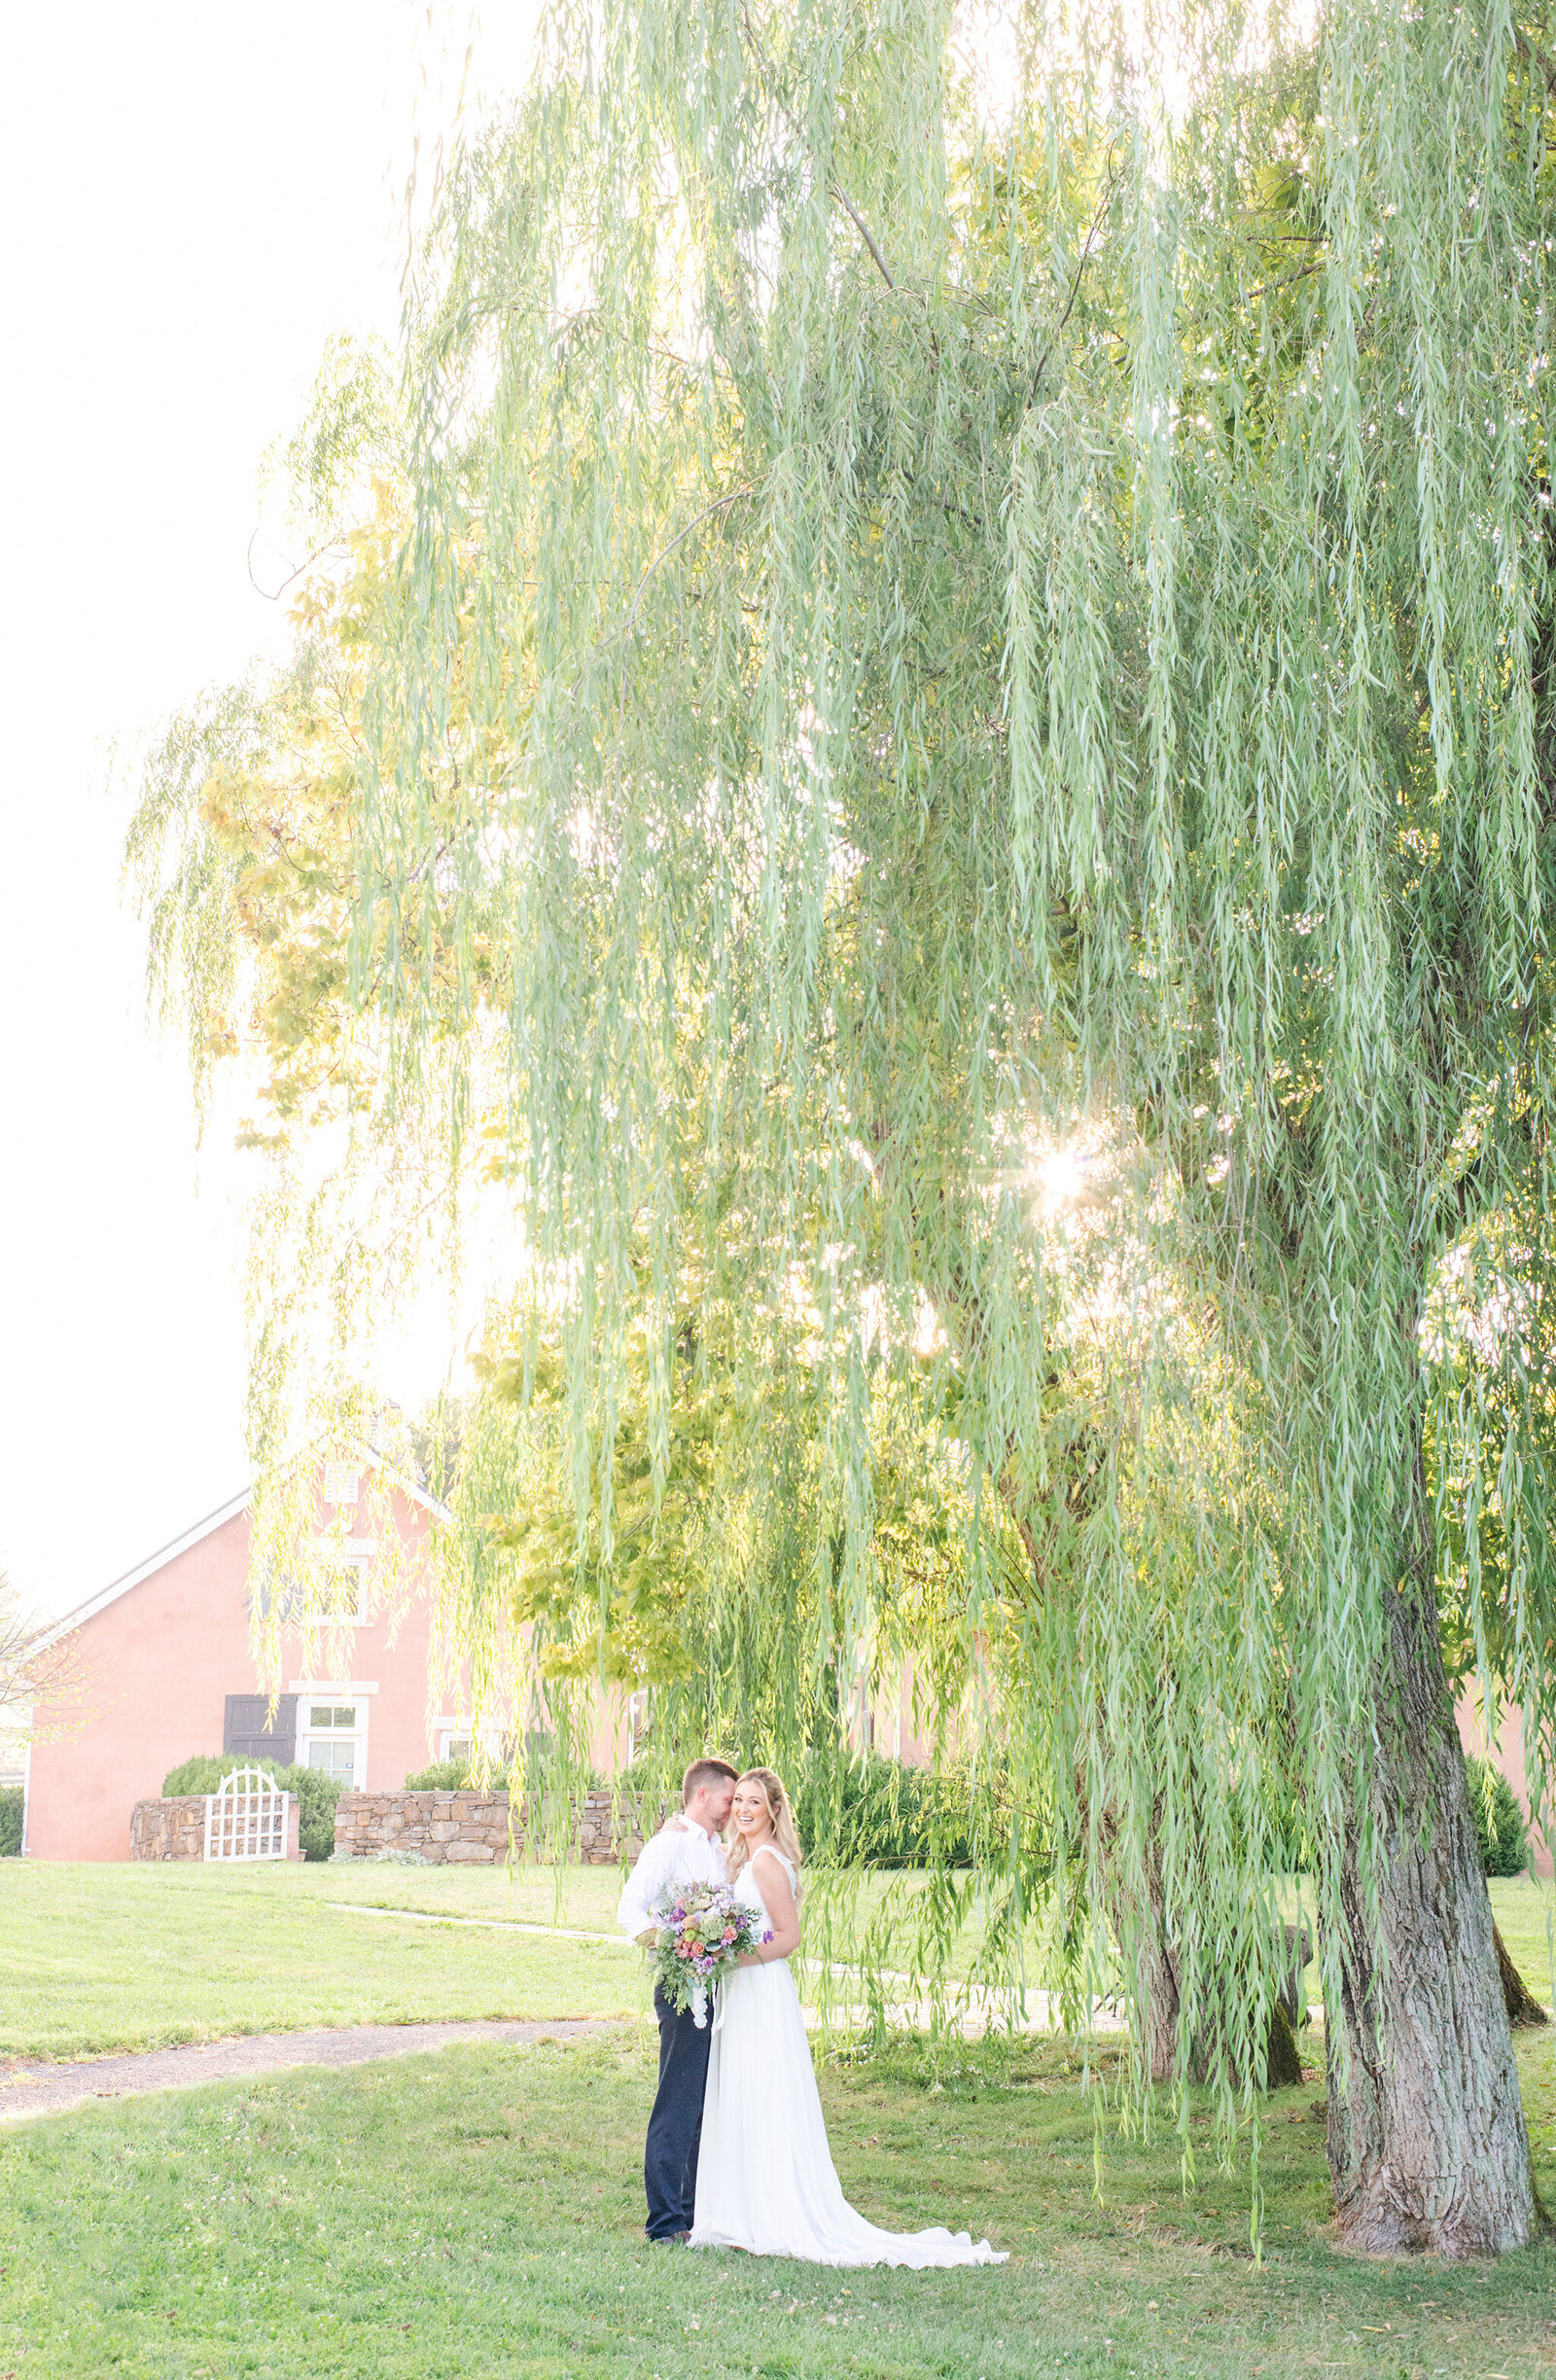 Bride and groom embracing under a weeping willow tree